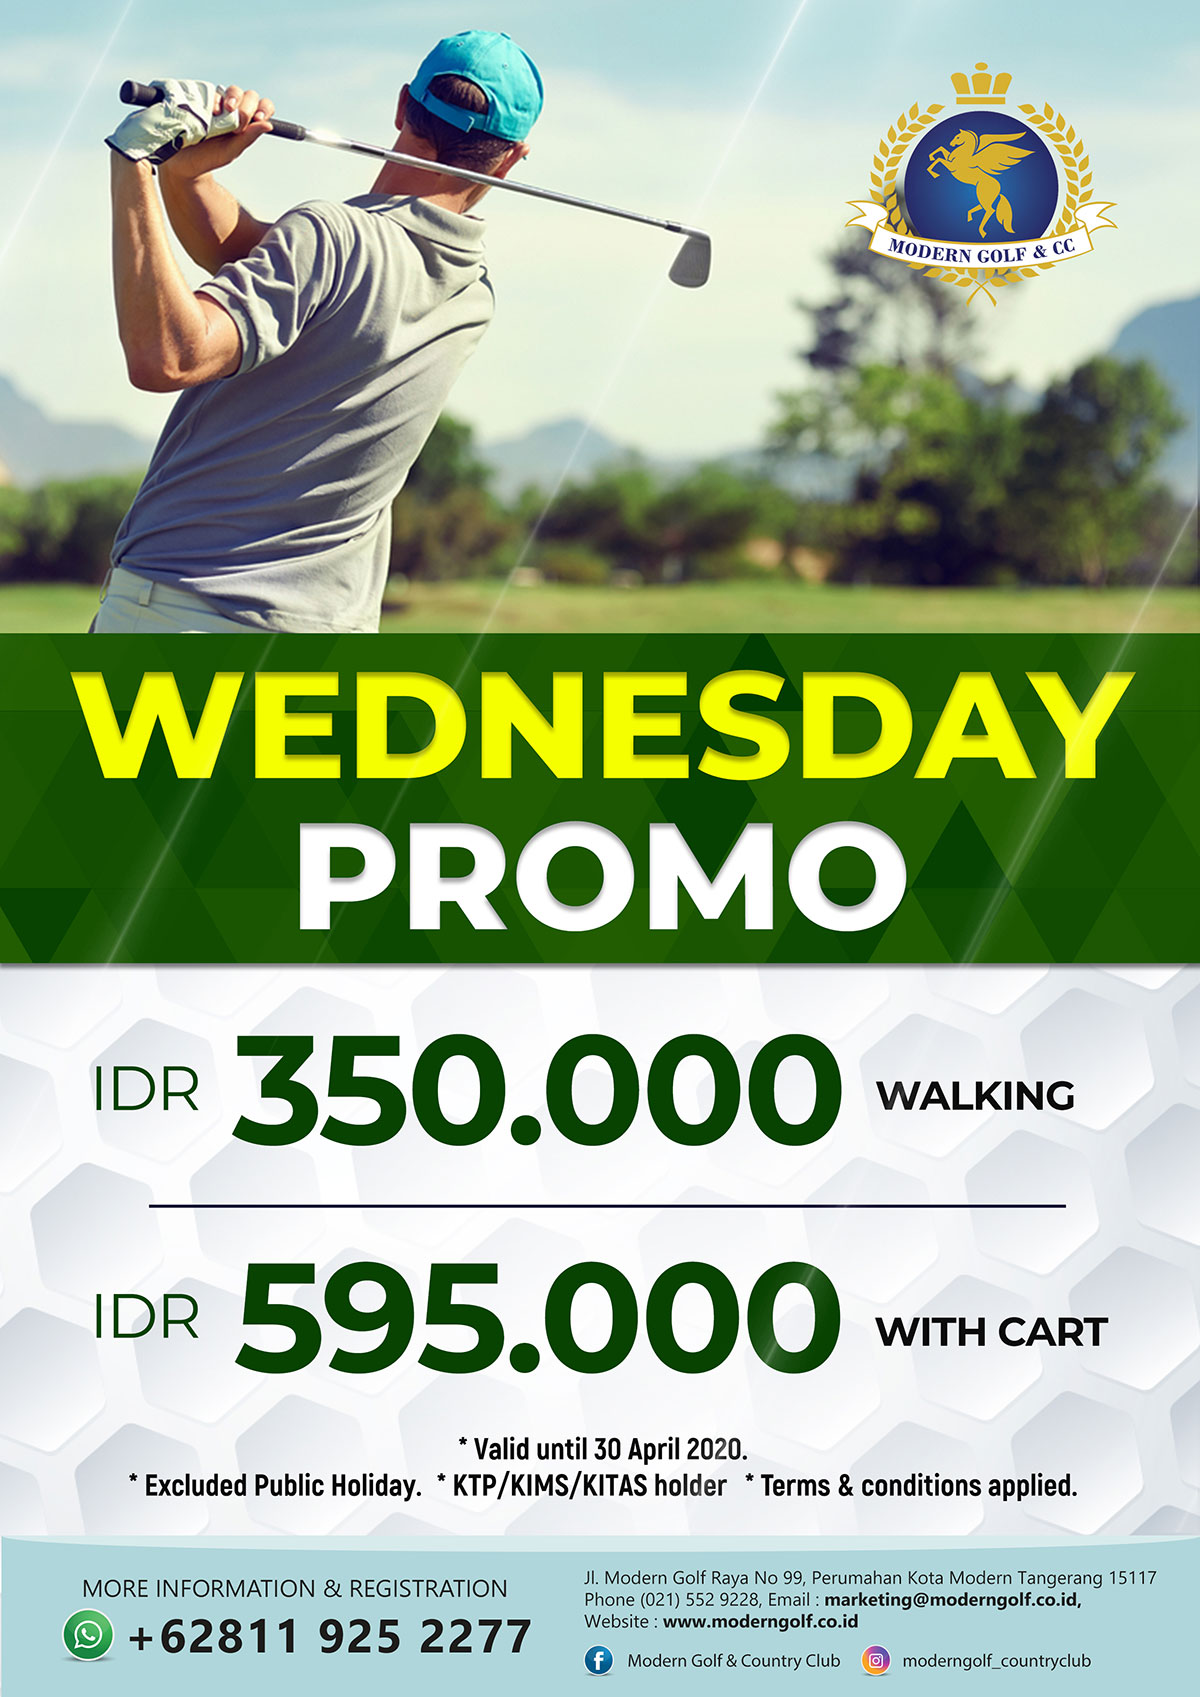 Wedneysday Promo